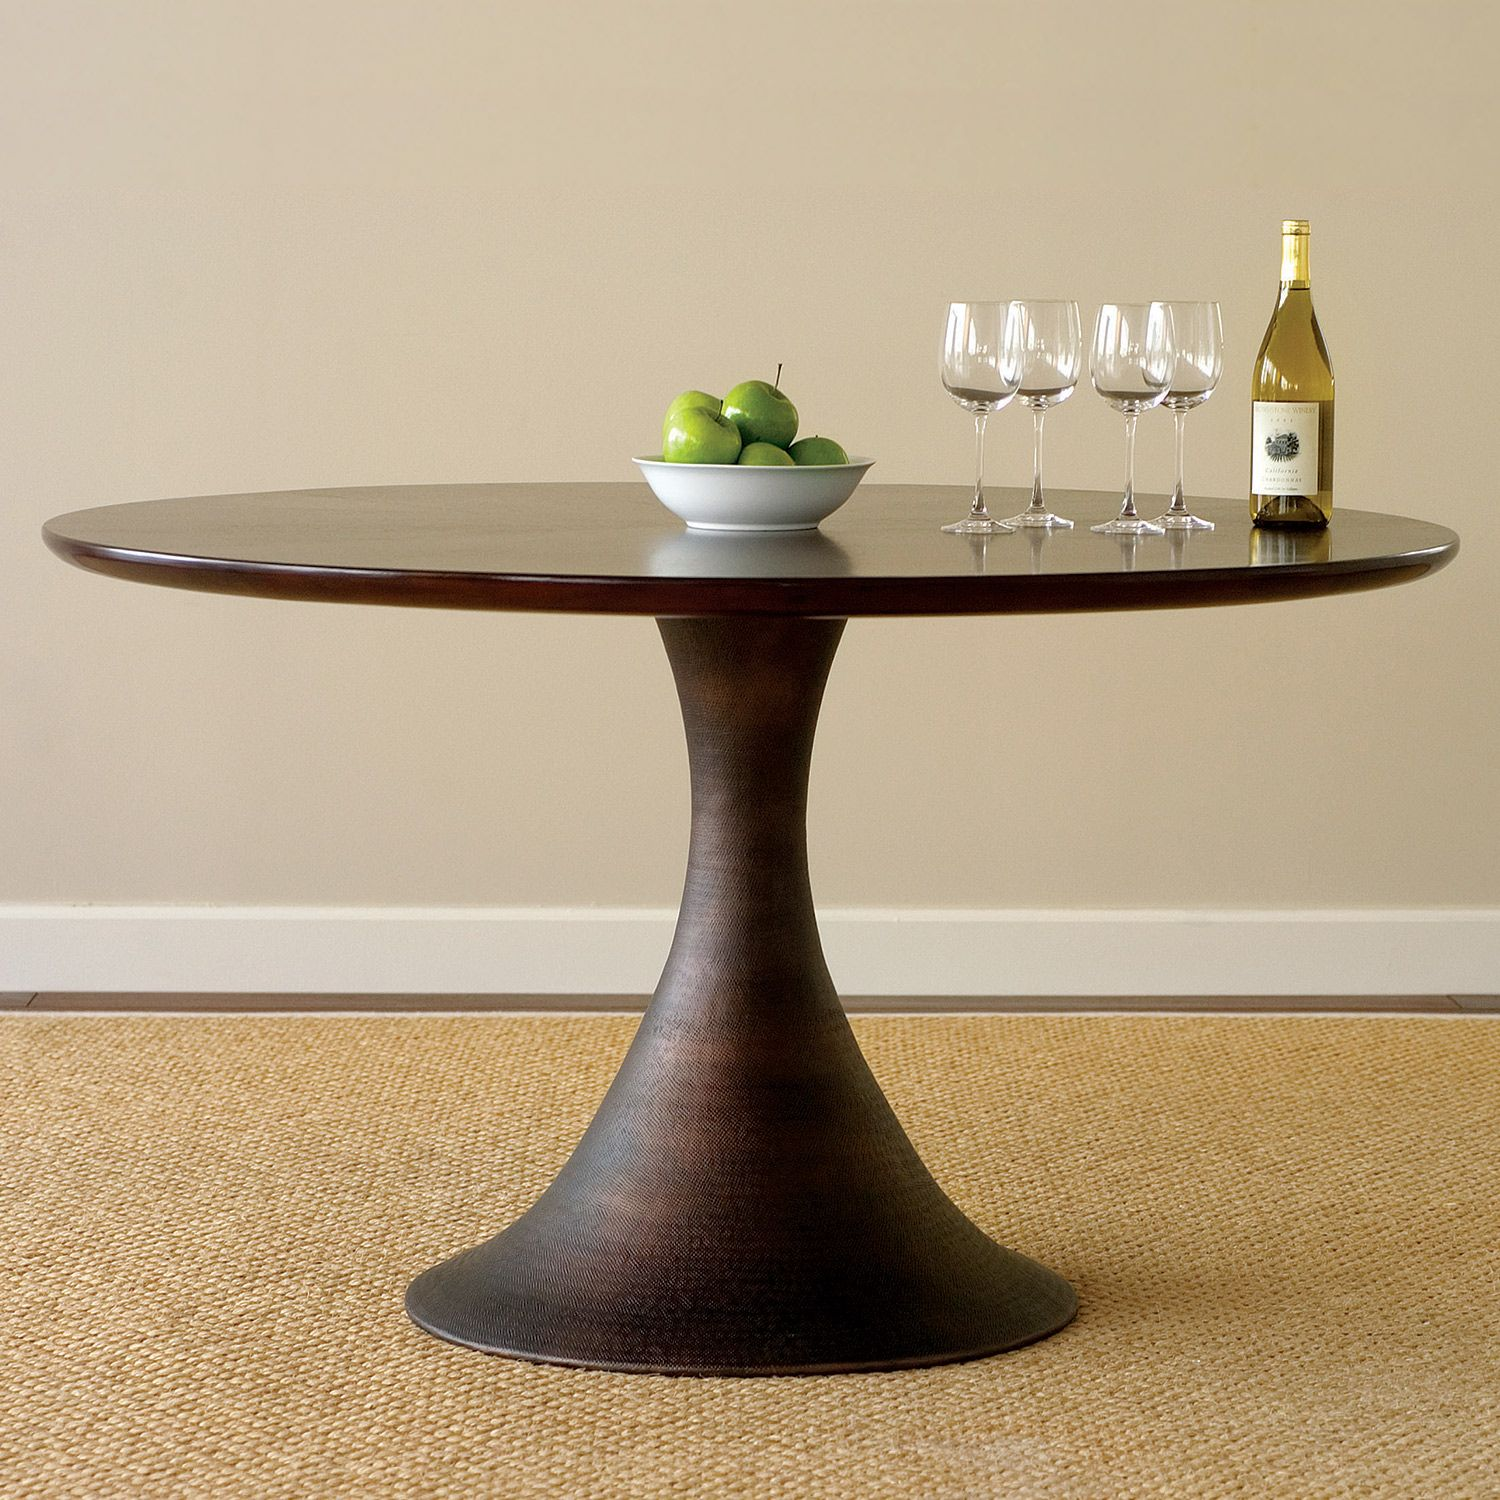 How to Build a Round Pedestal Table tabledesign